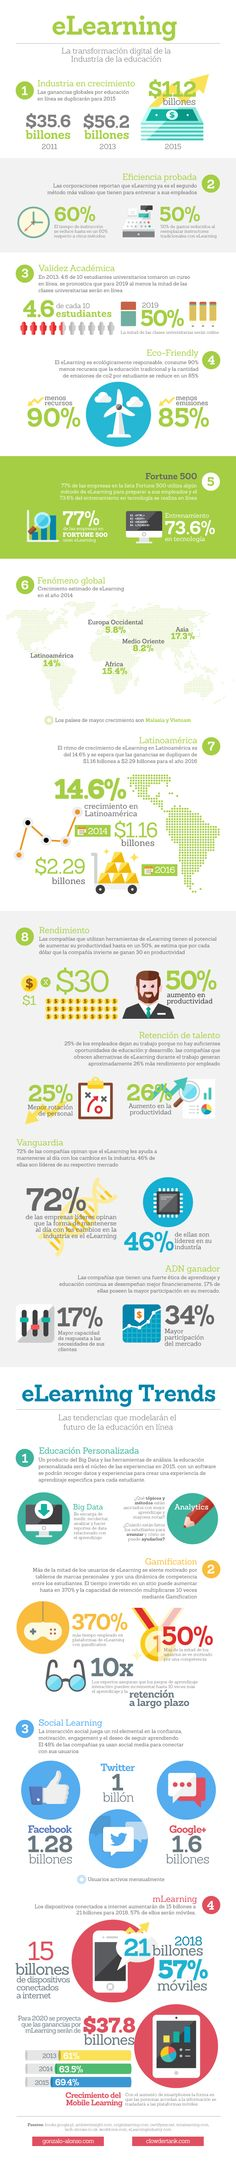 ELEARNING: TRANSFORMACIÓN DIGITAL DE LA EDUCACIÓN #INFOGRAFIA #INFOGRAPHIC #EDUCATION